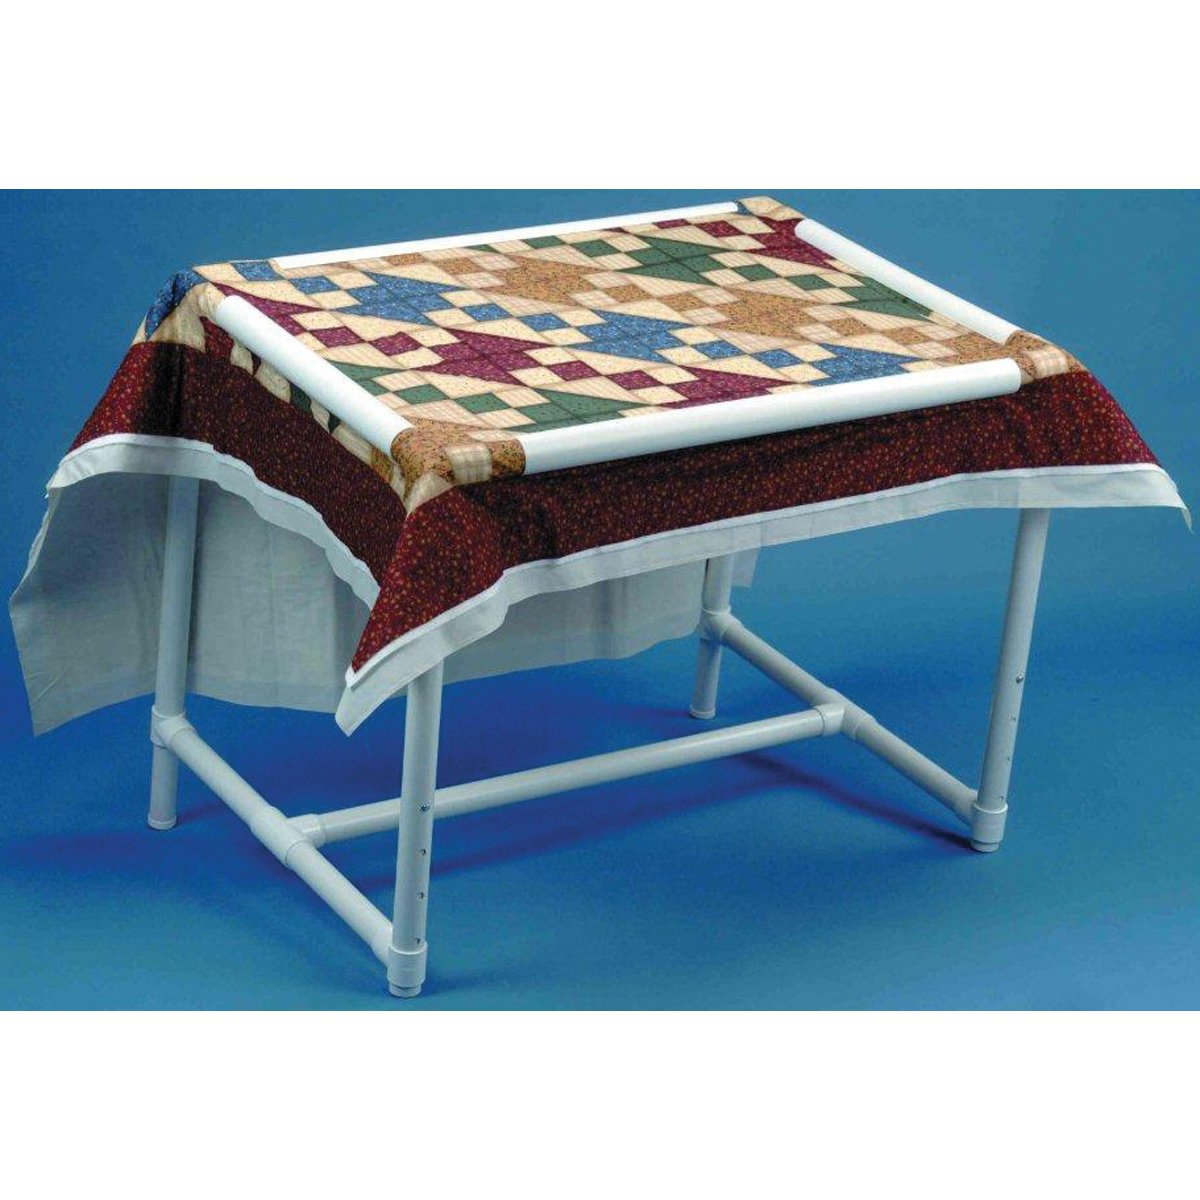 Dritz Quilters Floor Frame, 28 by 39-Inch 3129